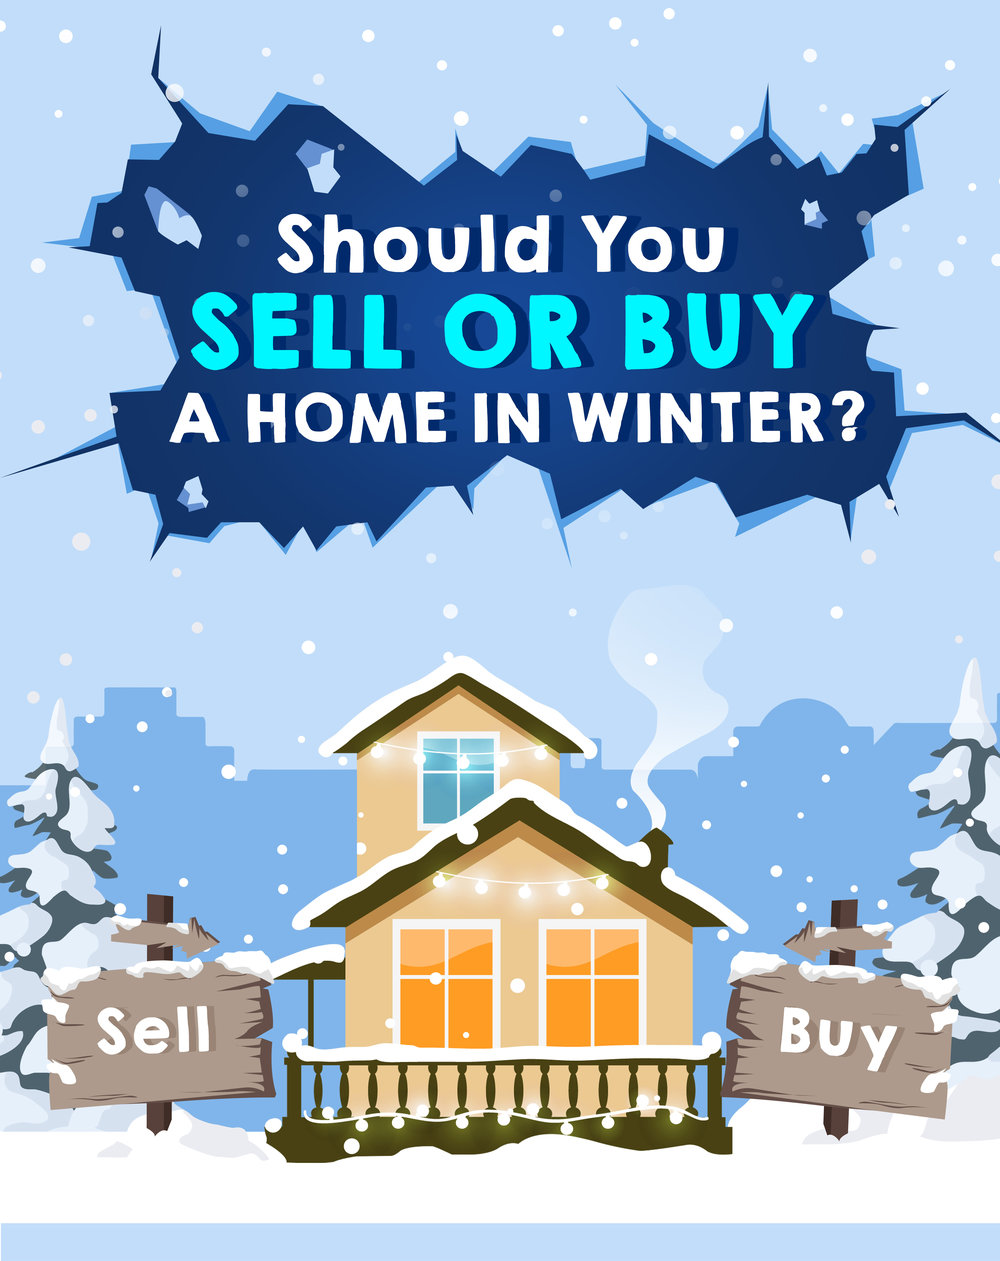 Should You Sell or Buy A Home in Winter? Here's Why the Colder Climate Might Work in Your Favor